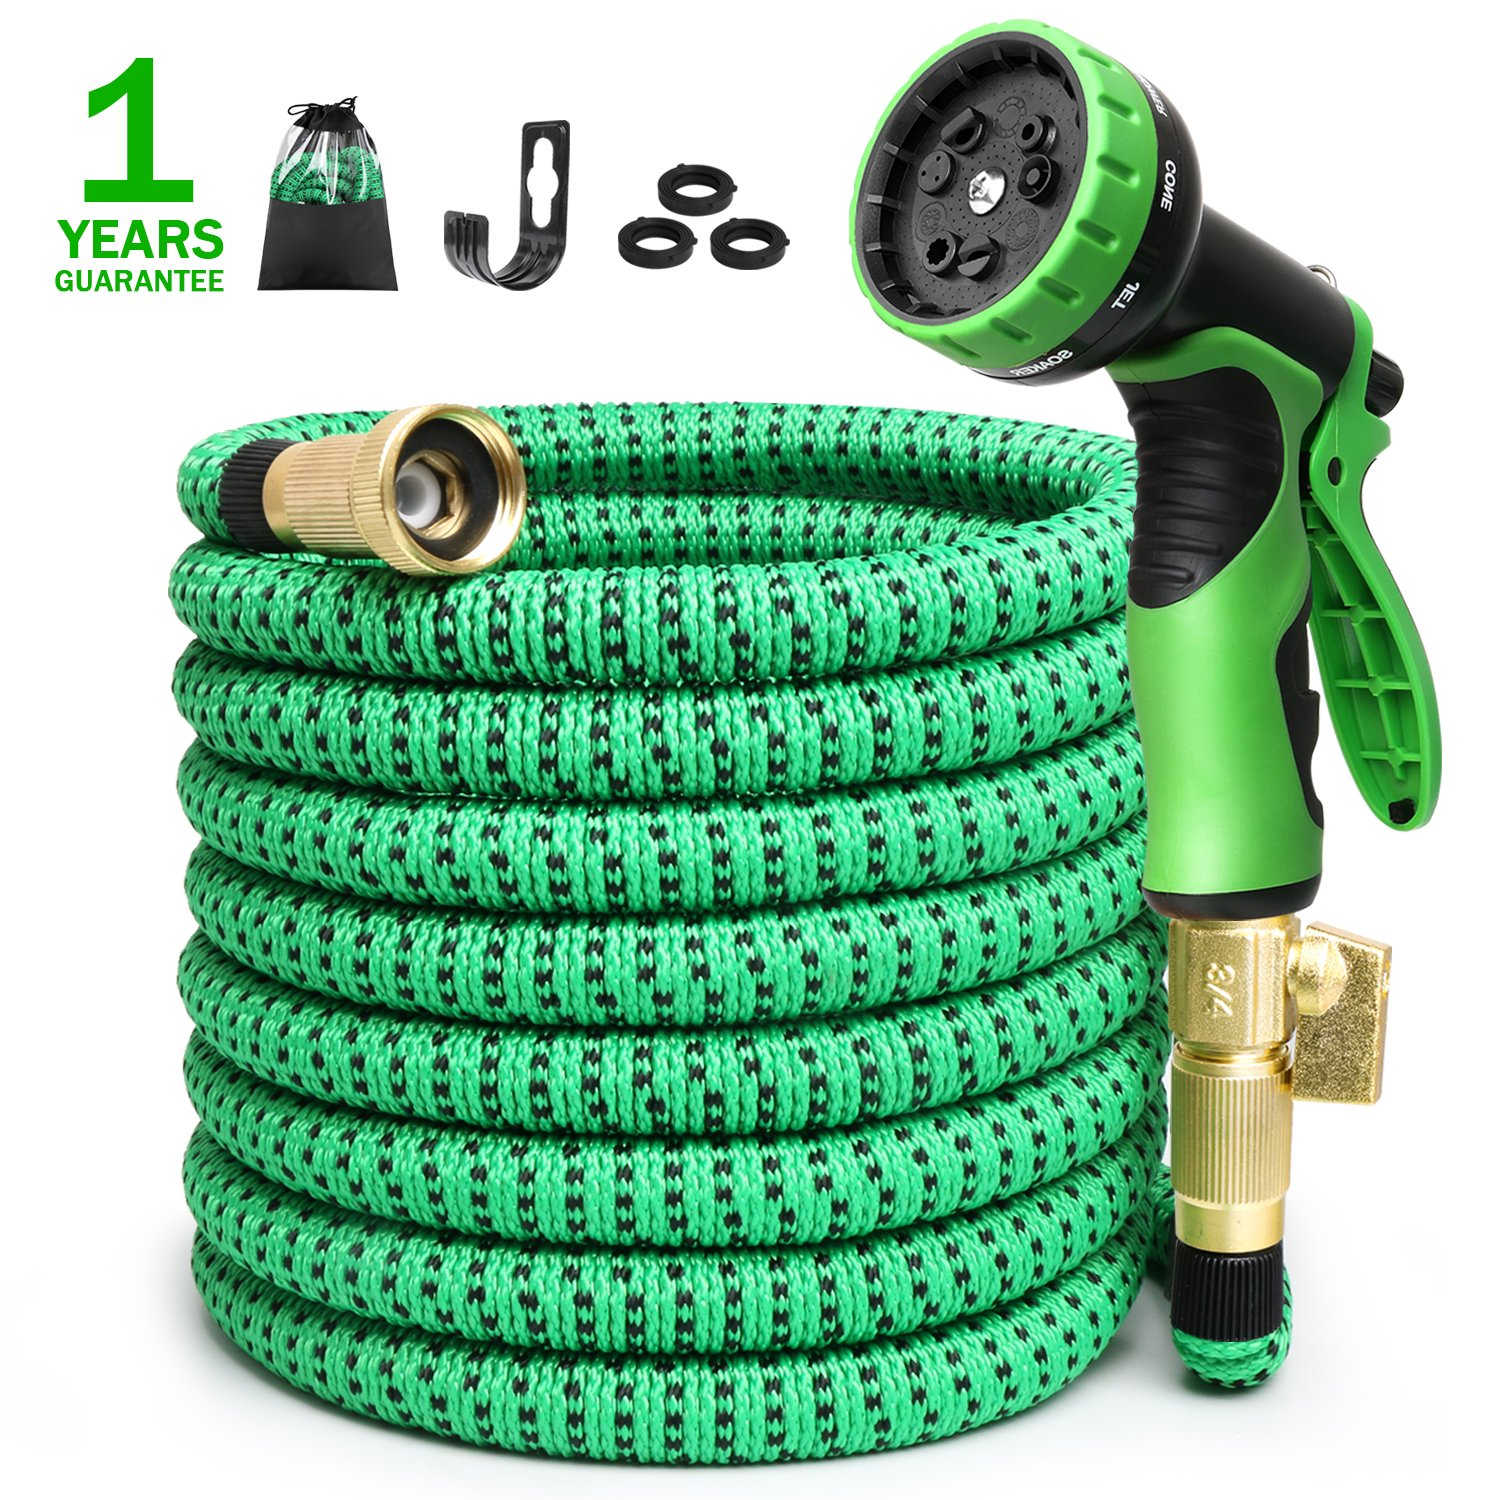 Expandable Garden Hose 50ft Expanding Water Hose, 50' Flexible Lightweight Gardening Yard Hose with 3/4 Inch 100% Solid Brass Fittings 9 Function Hose Nozzle, Outdoor Cloth Hoses(1 Year Guarantee) by NAYAHOSE